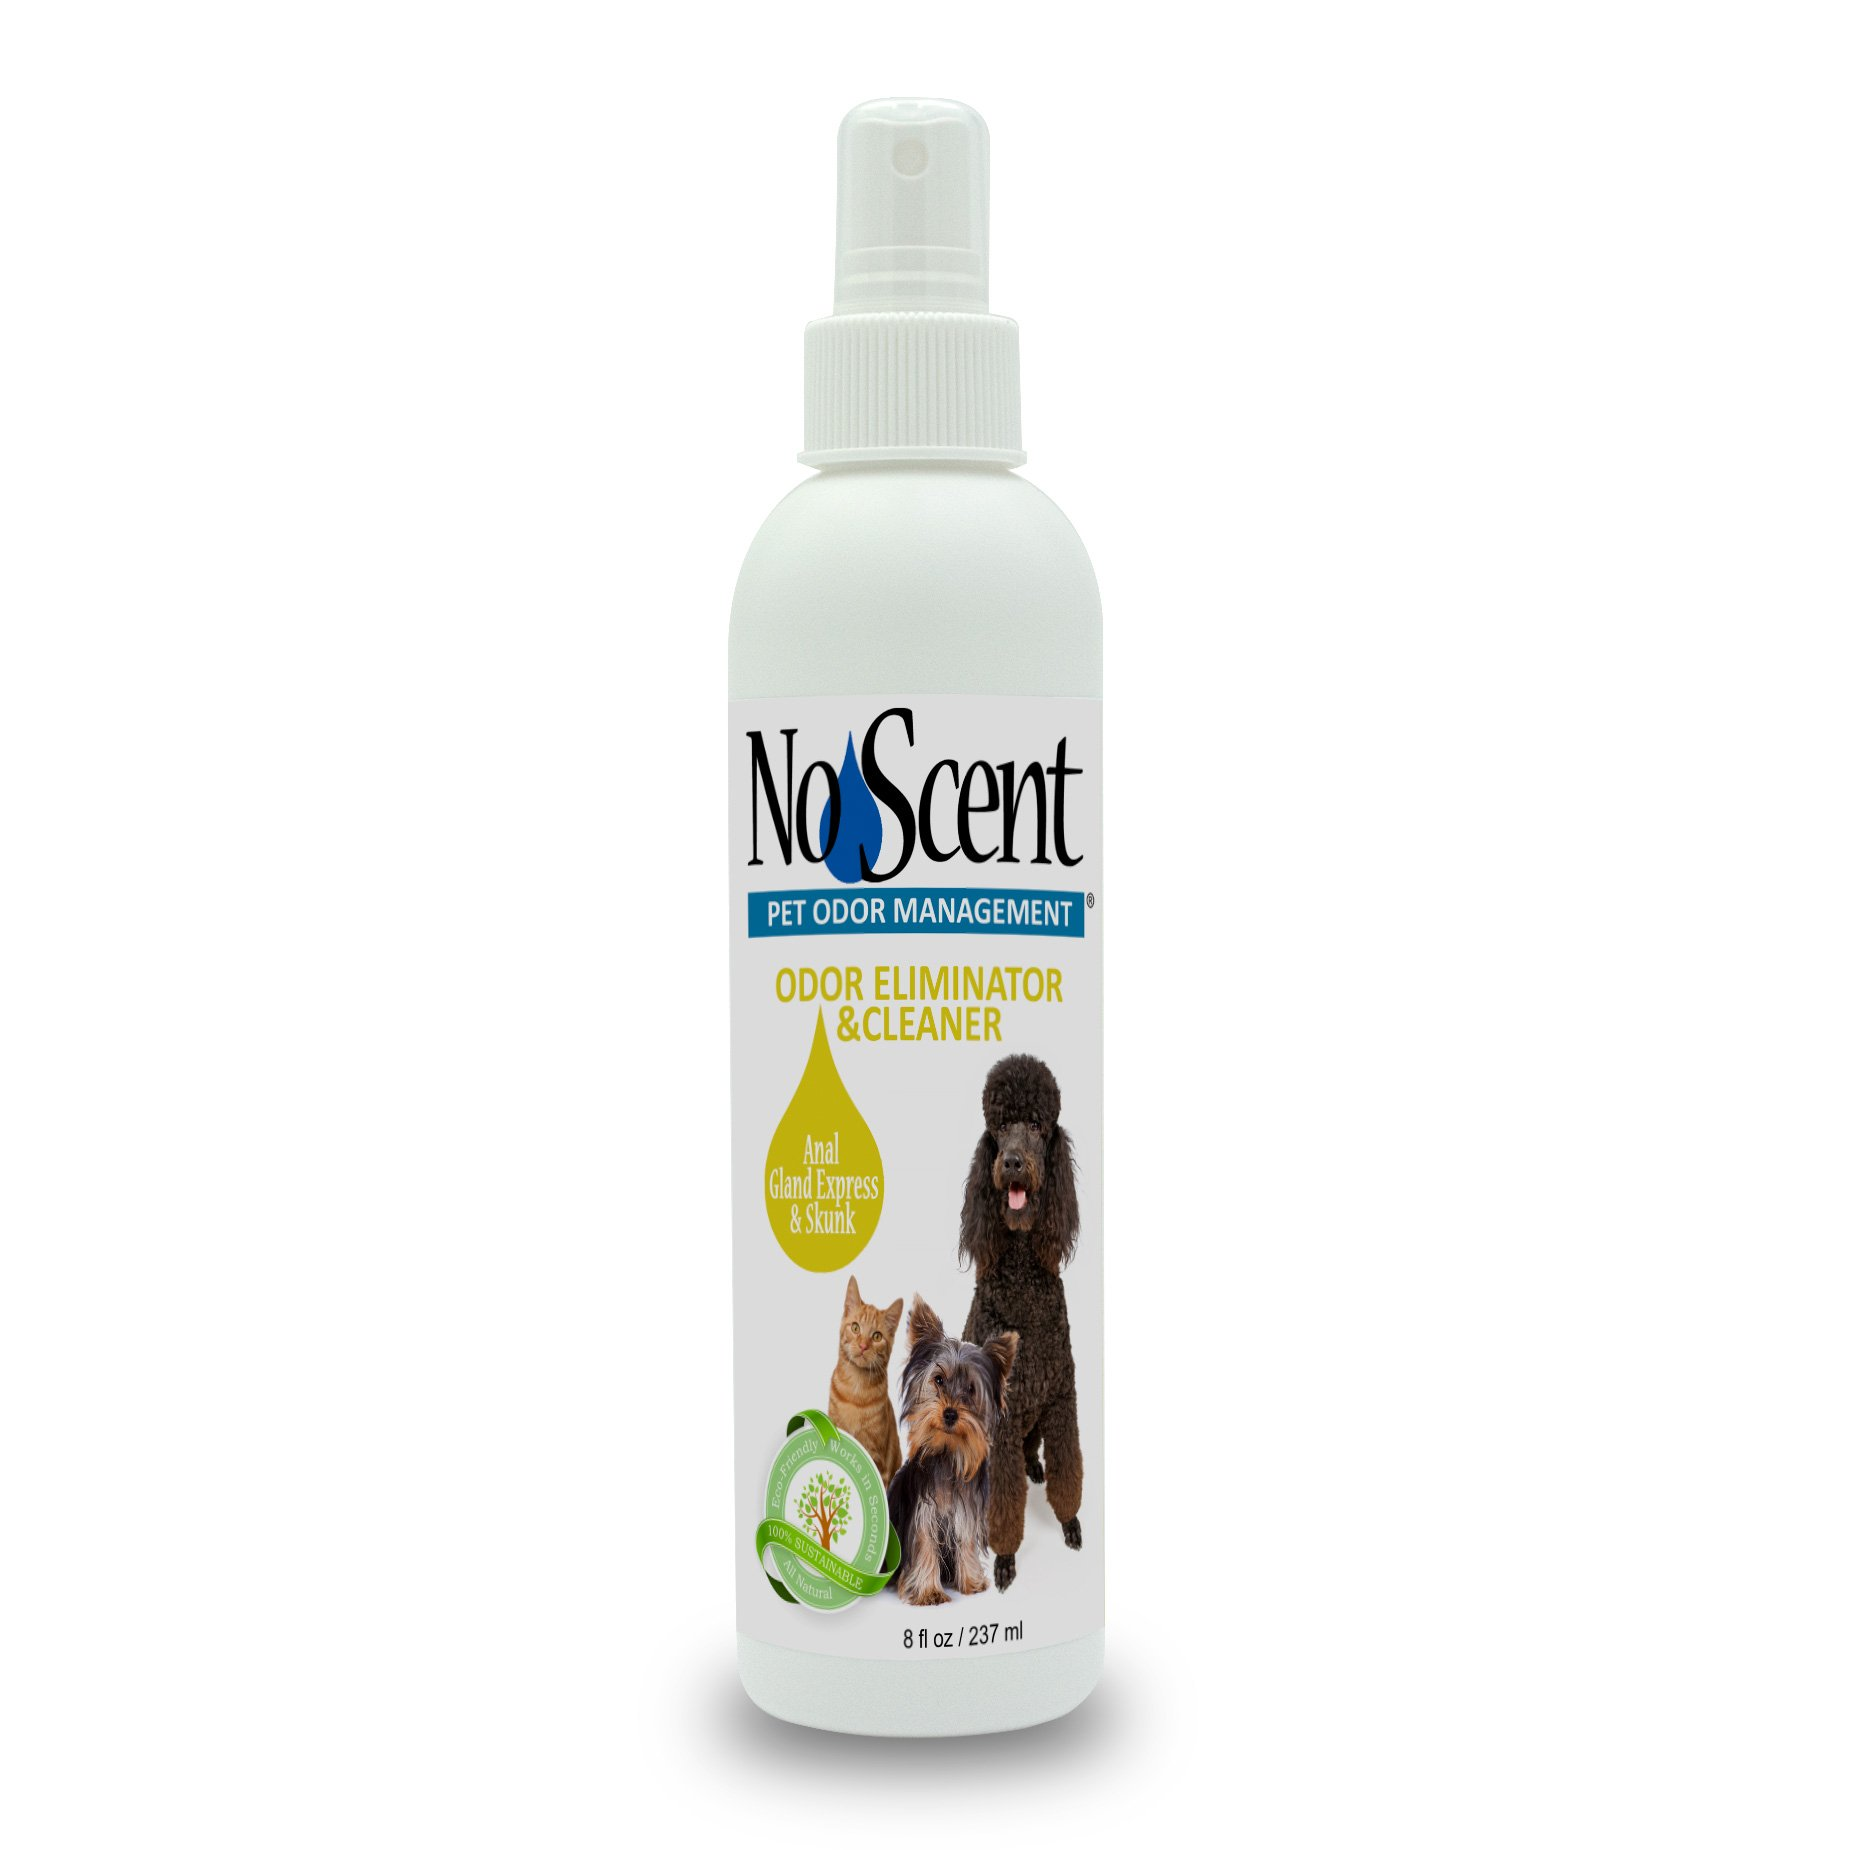 No Scent Anal Gland Express & Skunk - Professional Pet Grooming and Skunk Odor Eliminator & Cleaner - Safe Natural Fast Microencapsulating Spray on Fur Smell Remover for Dogs and Pets (8 oz)